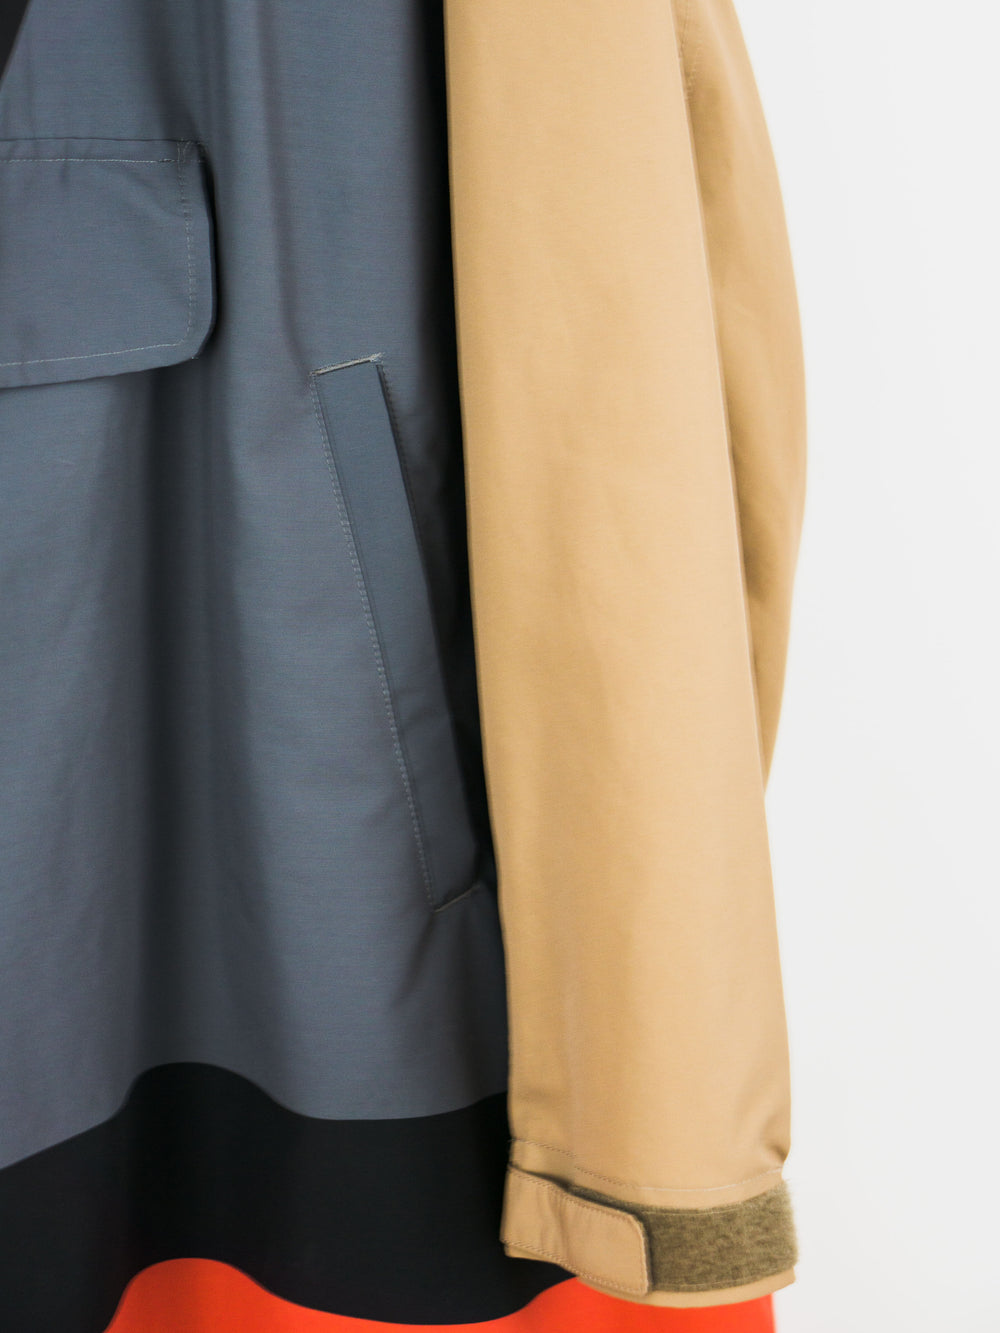 Undercover SS15 Television Half-Zip Anorak/Parka